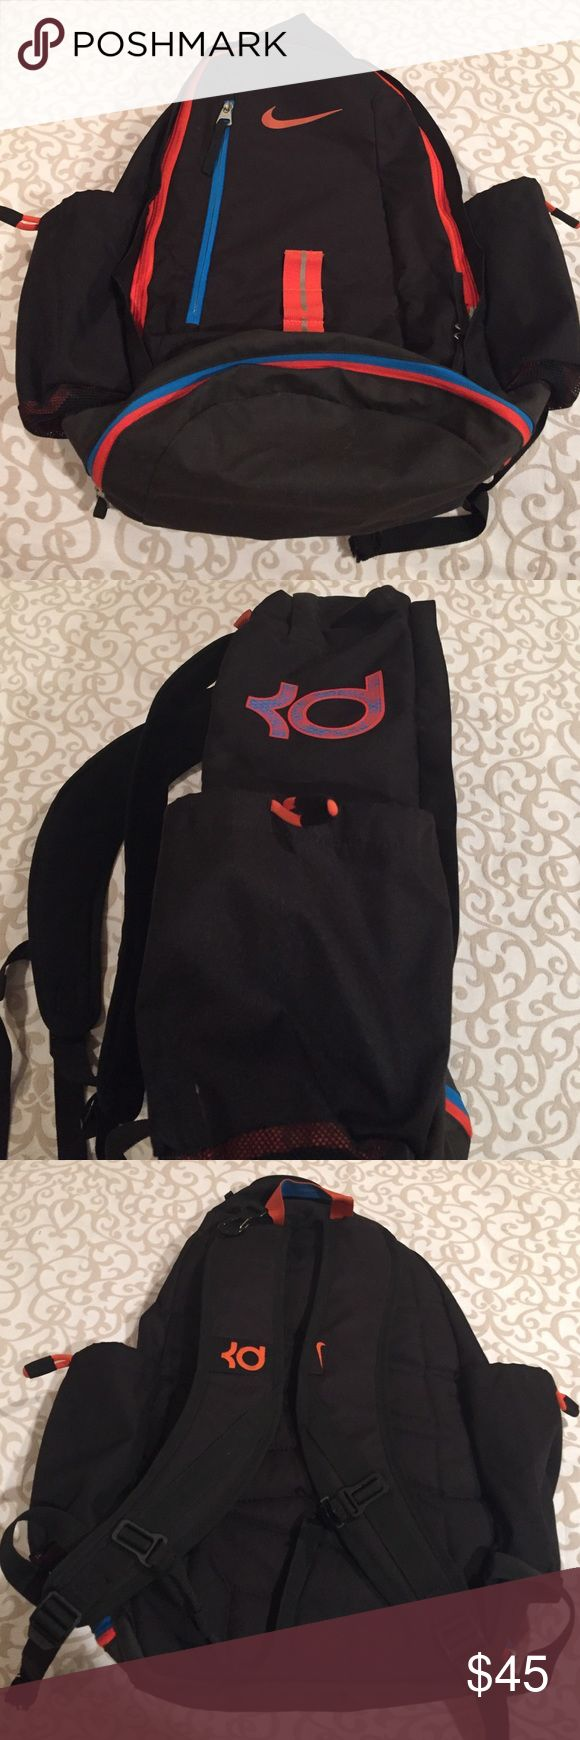 Nike KD Backpack Mens/Boys very hard to find KD backpack. Gentle used. Very nice size backpack. Holds lots of stuff. Even has a silver lined cooling compartment in the front zipper. All zippers work. No rips or tears. Looks great! Nike Bags Backpacks